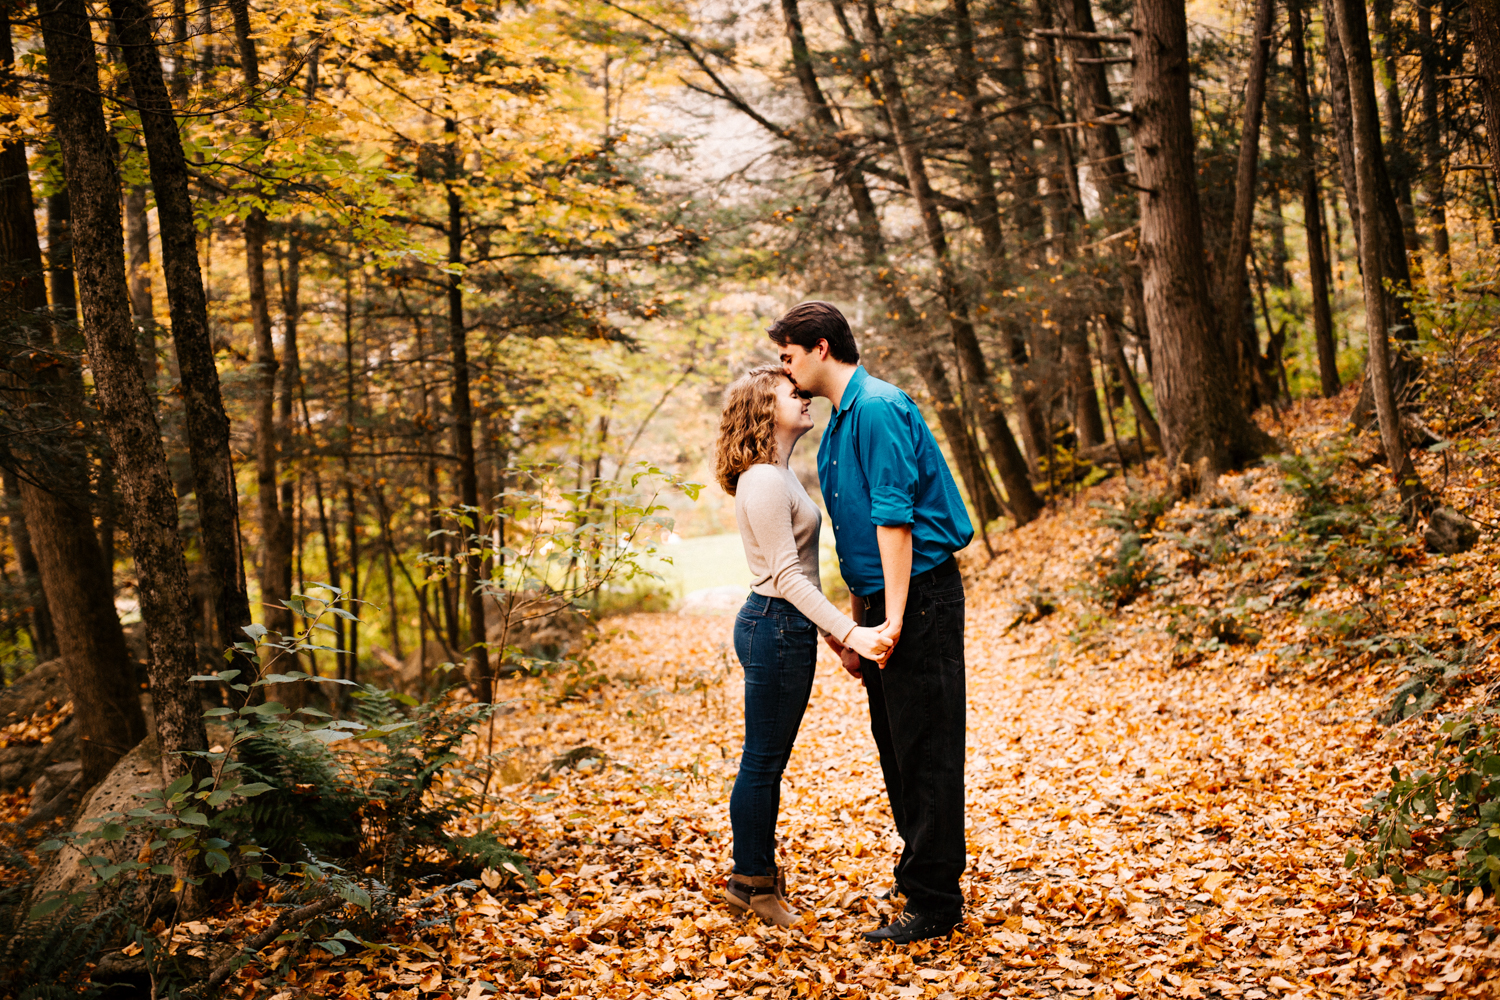 kent-falls-boston-wedding-photography-engagement-session-connecticut-new-england-fall-october.jpg